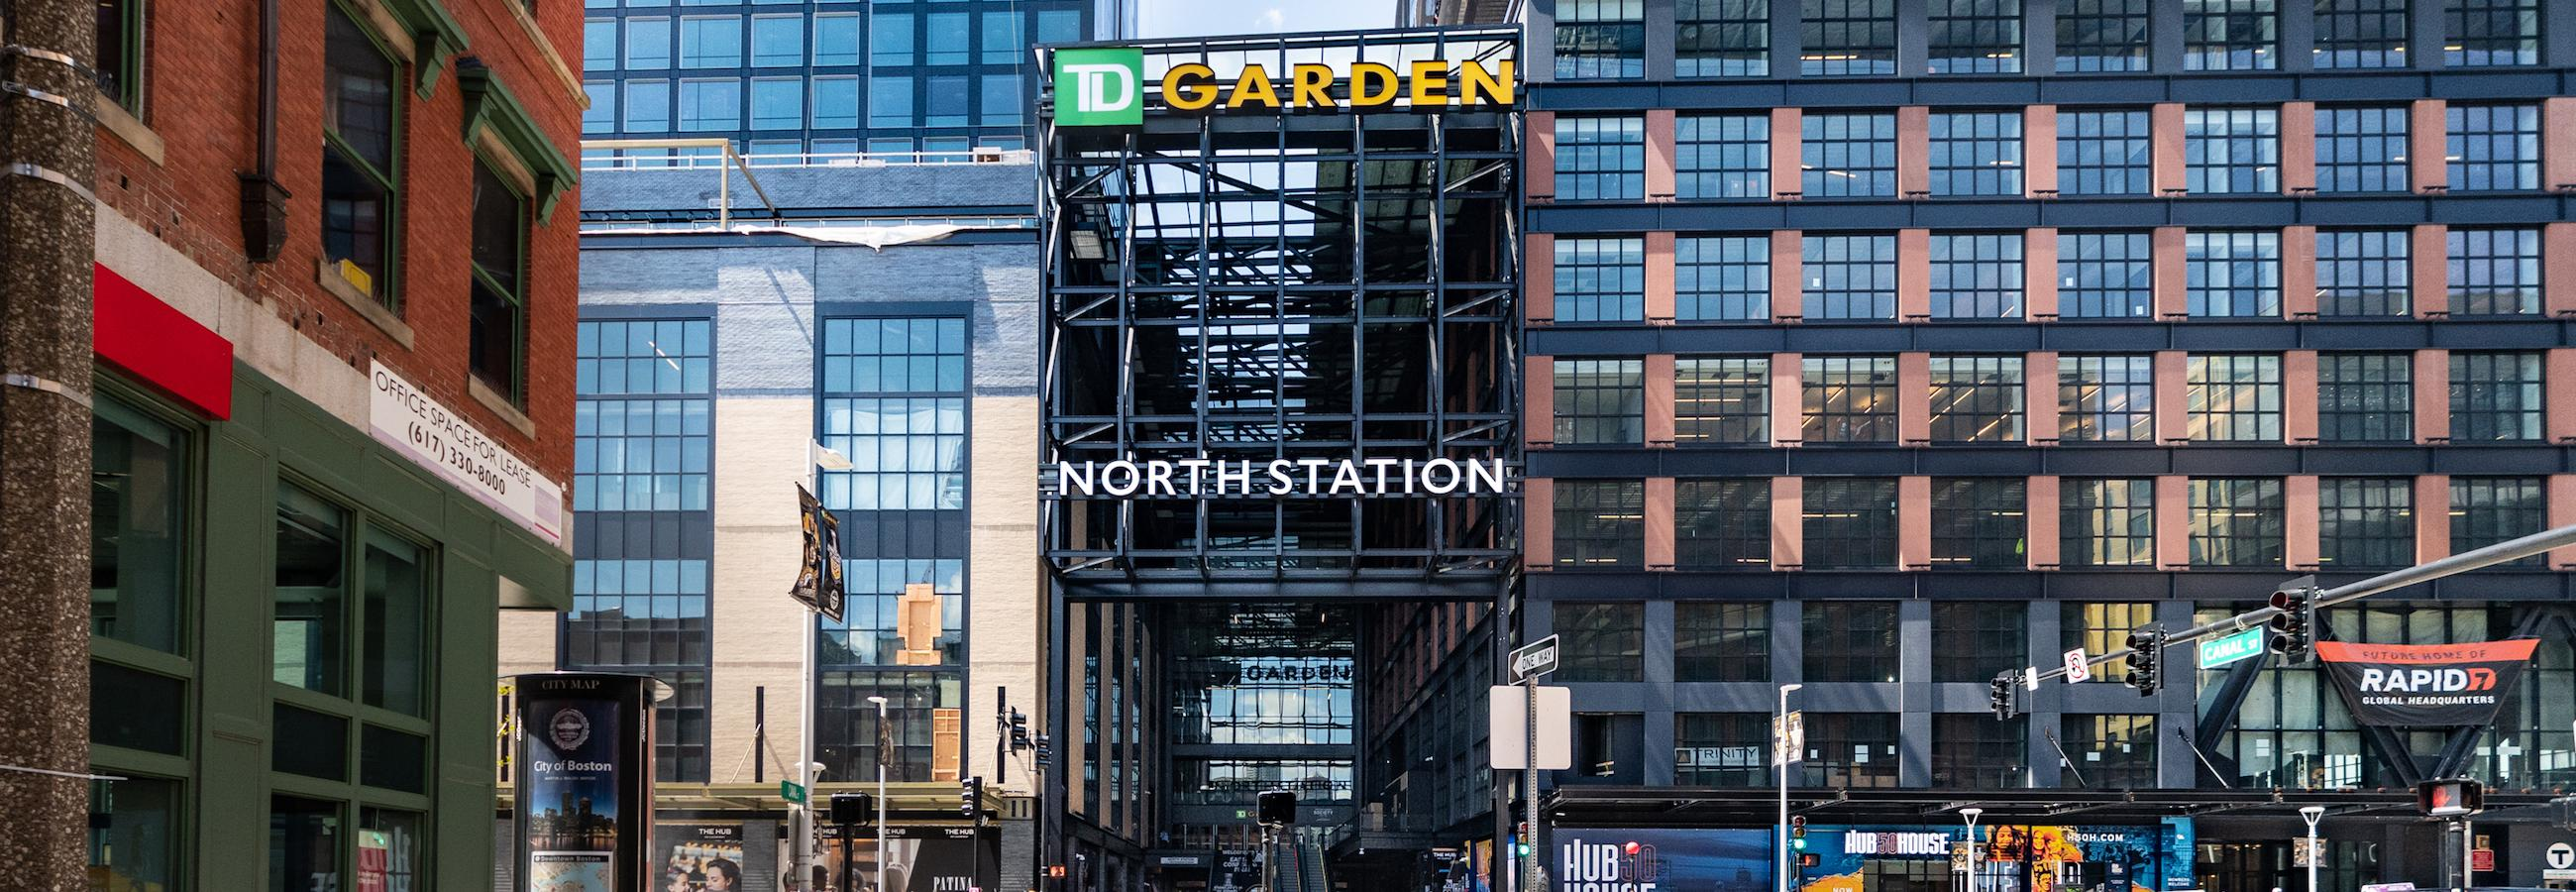 Causeway St entrance to TD Garden/North Station